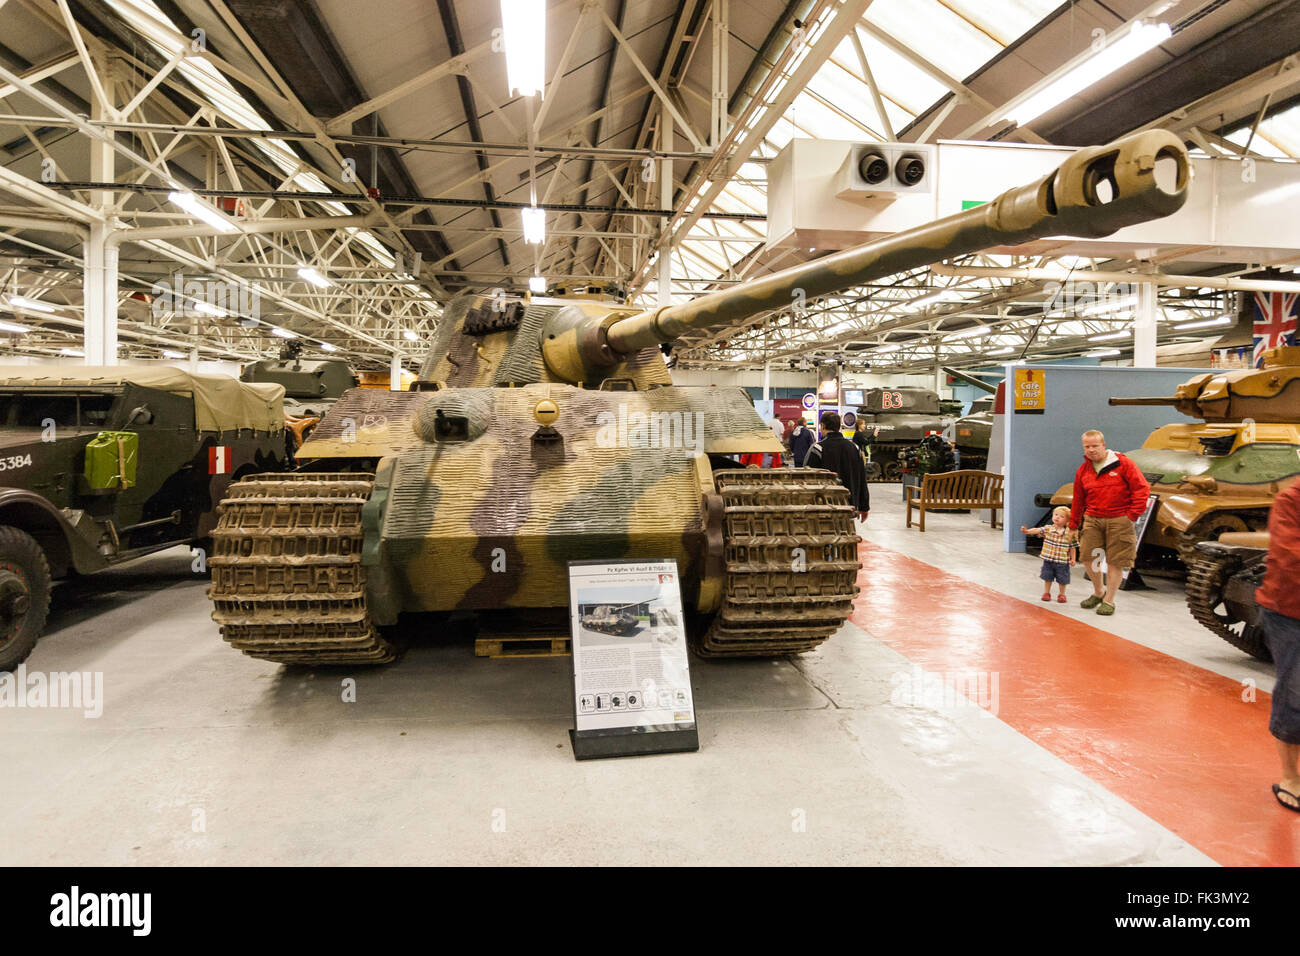 Bovington tank museum interior display, German Tiger II, King Tiger, tank from world war two, museum hall, other - Stock Image